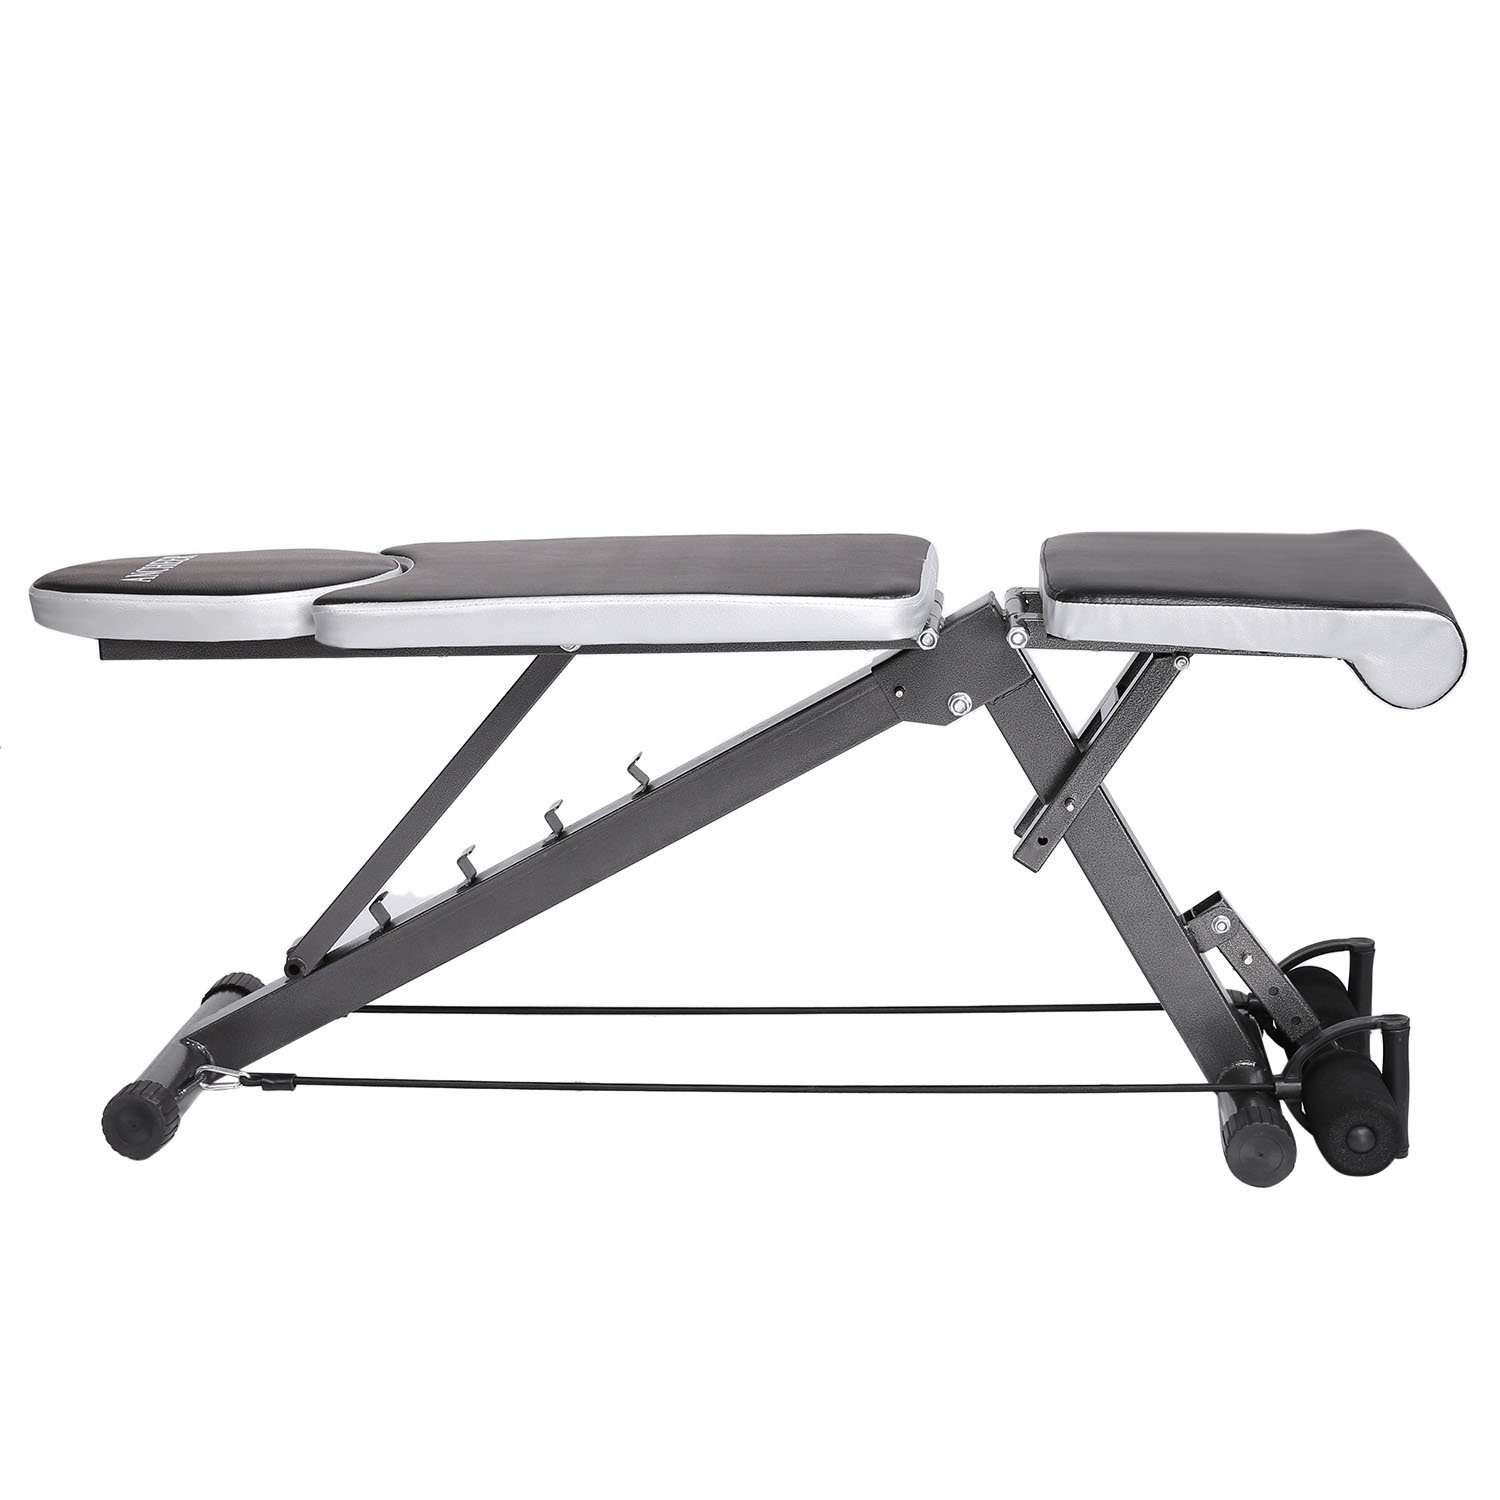 Amazoncom Weight Bench Sit Up Bench  Ancheer Adjustablel Exercise